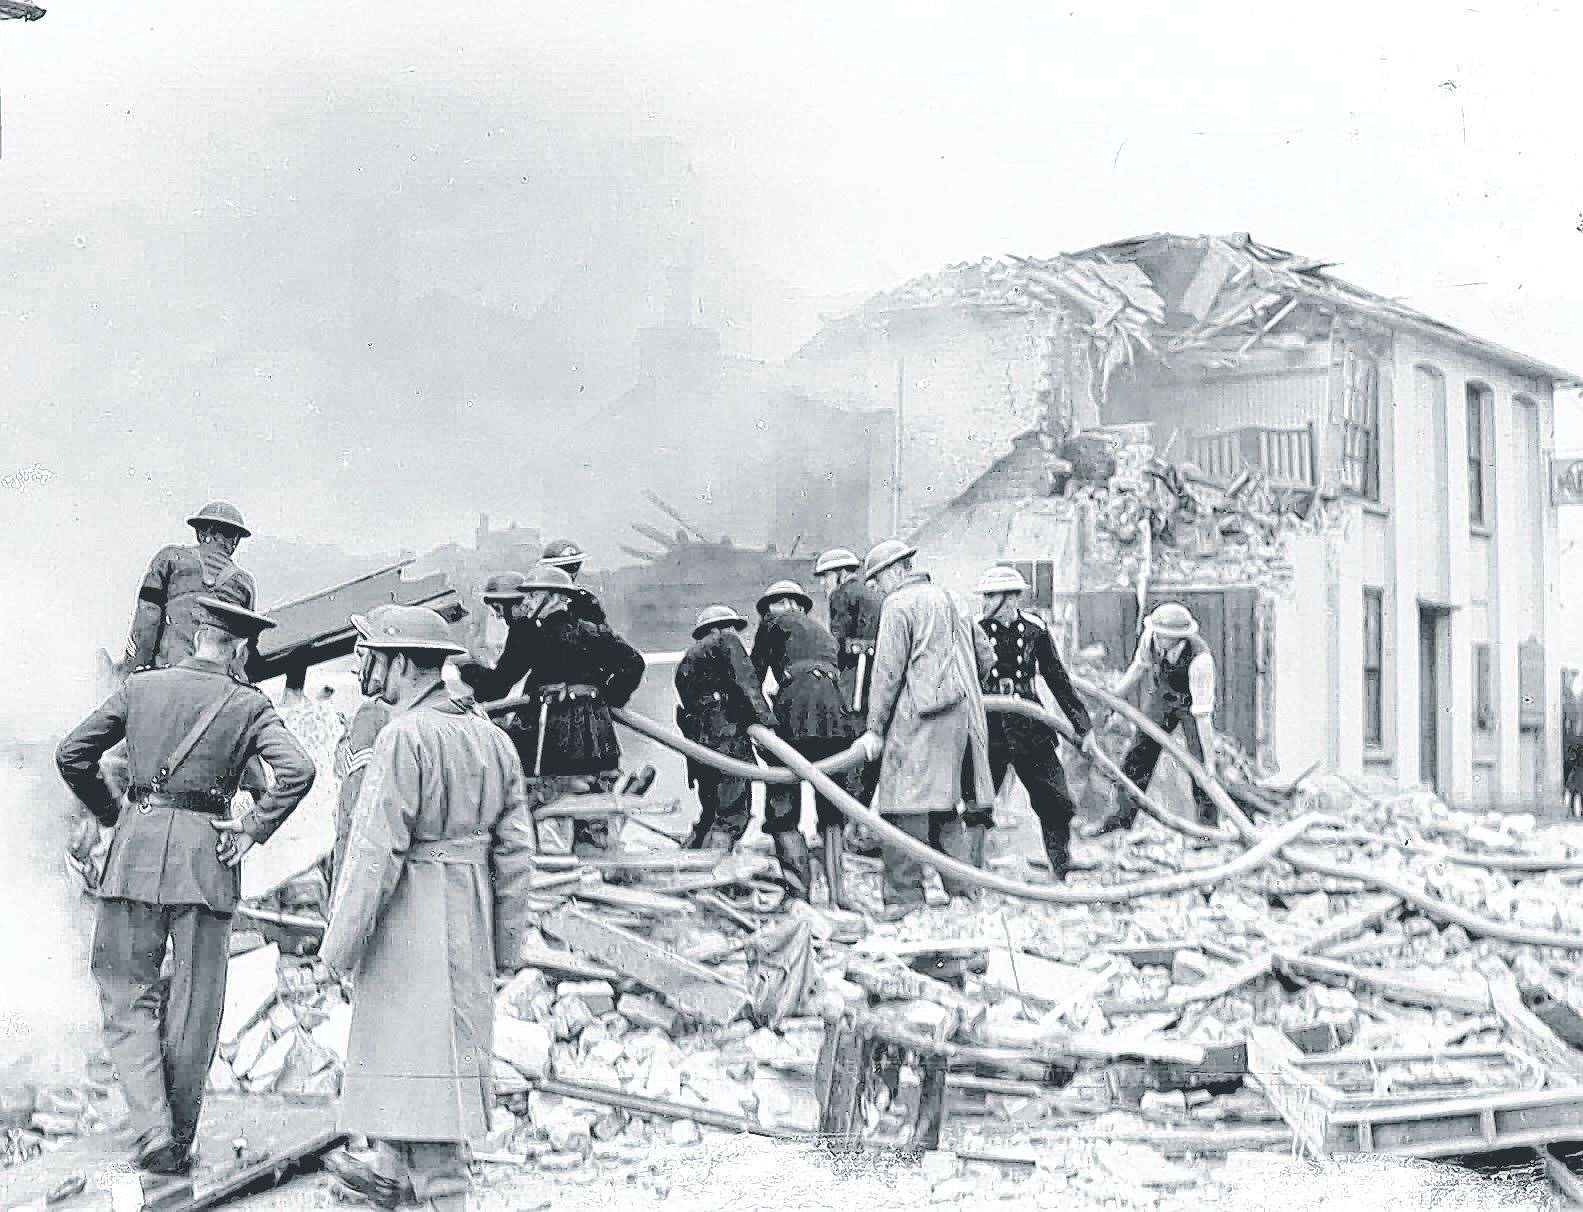 Maidstone suffered its share of wartime bombing: this one fell on Albion Place on October 10, 1940